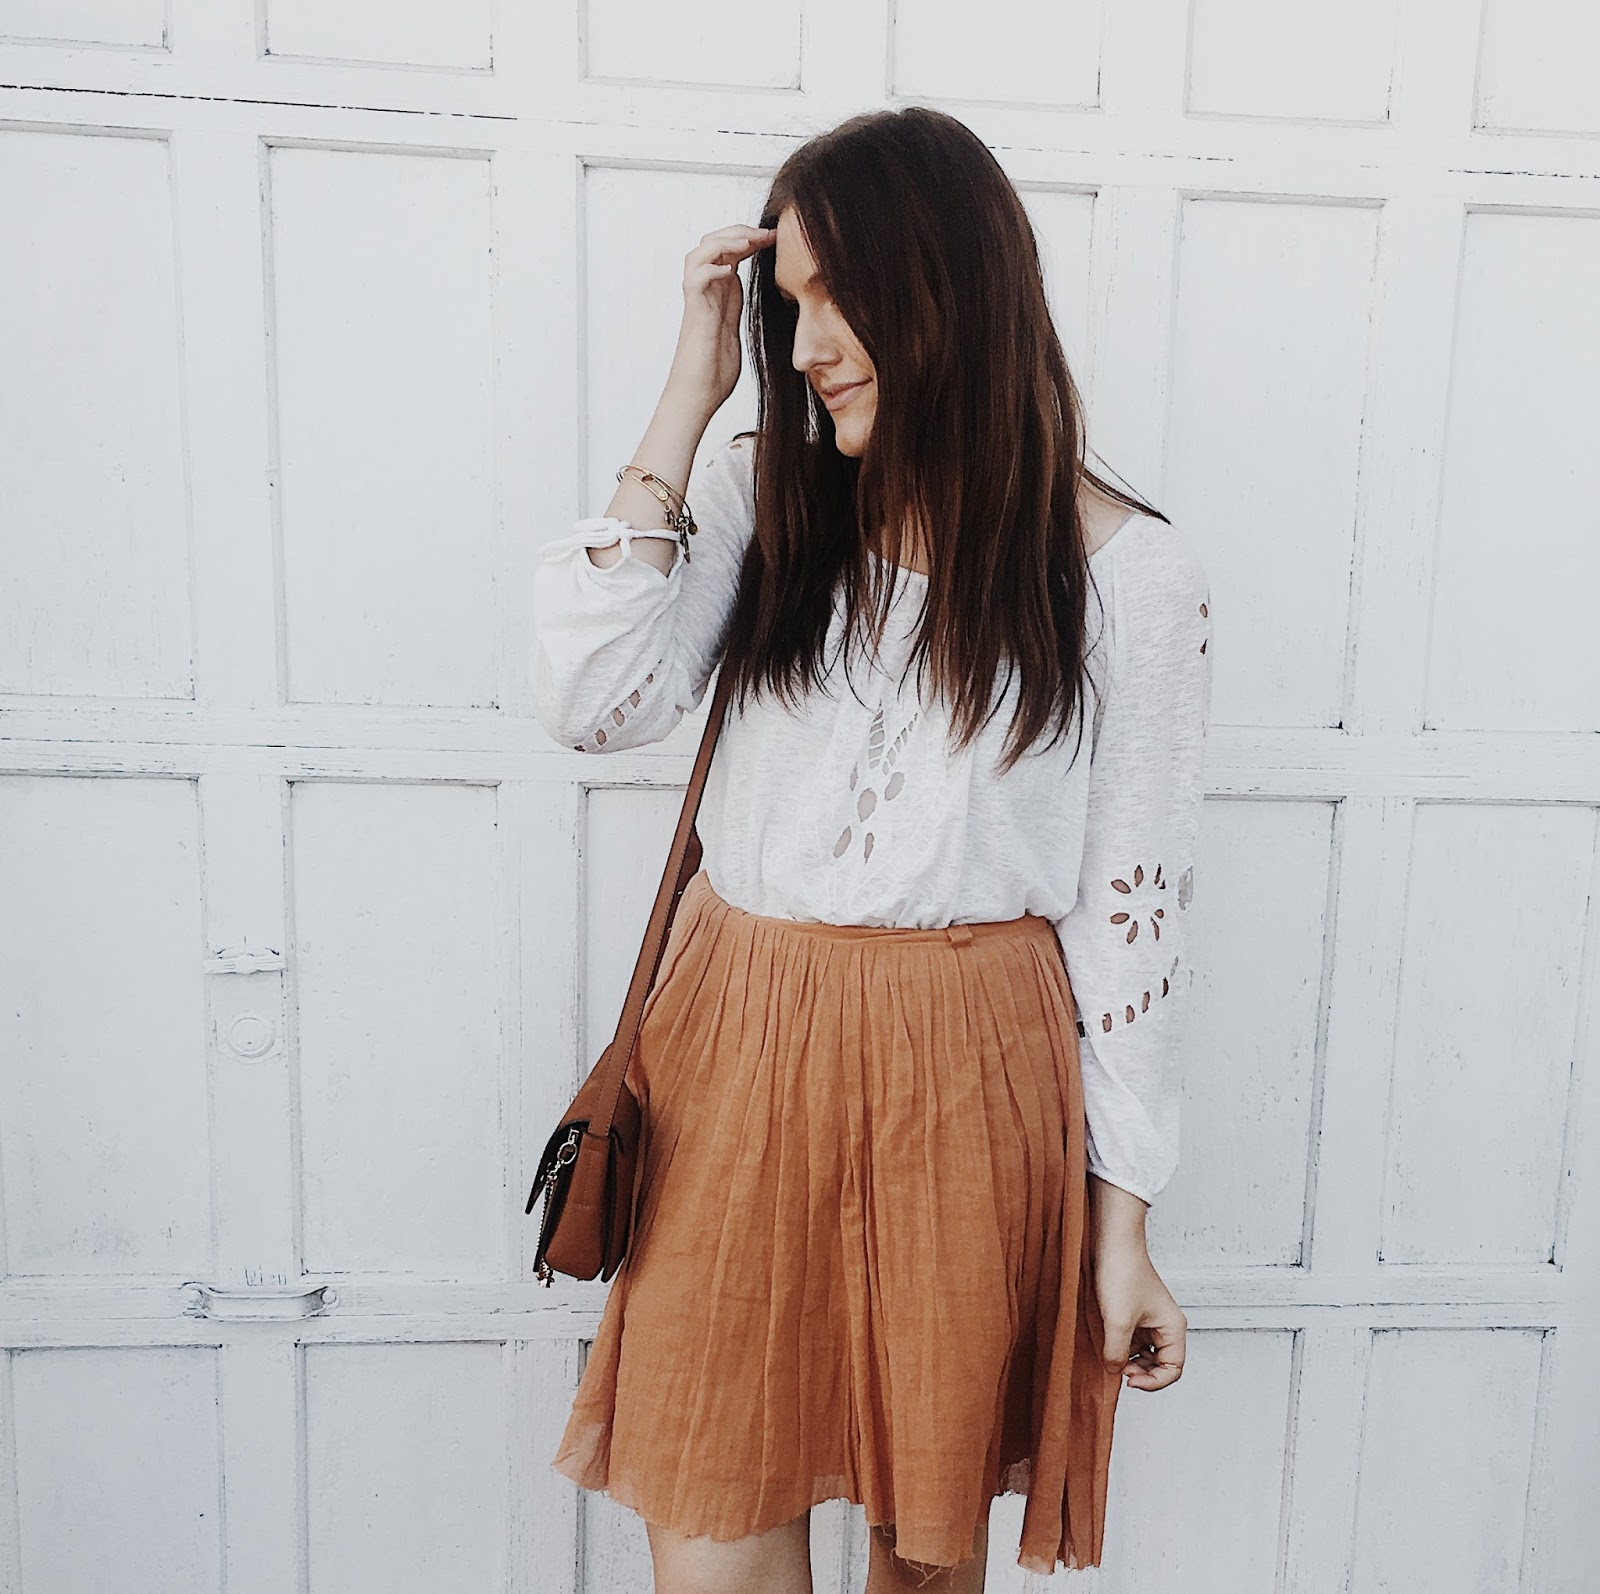 social media validation sabo skirt outfit